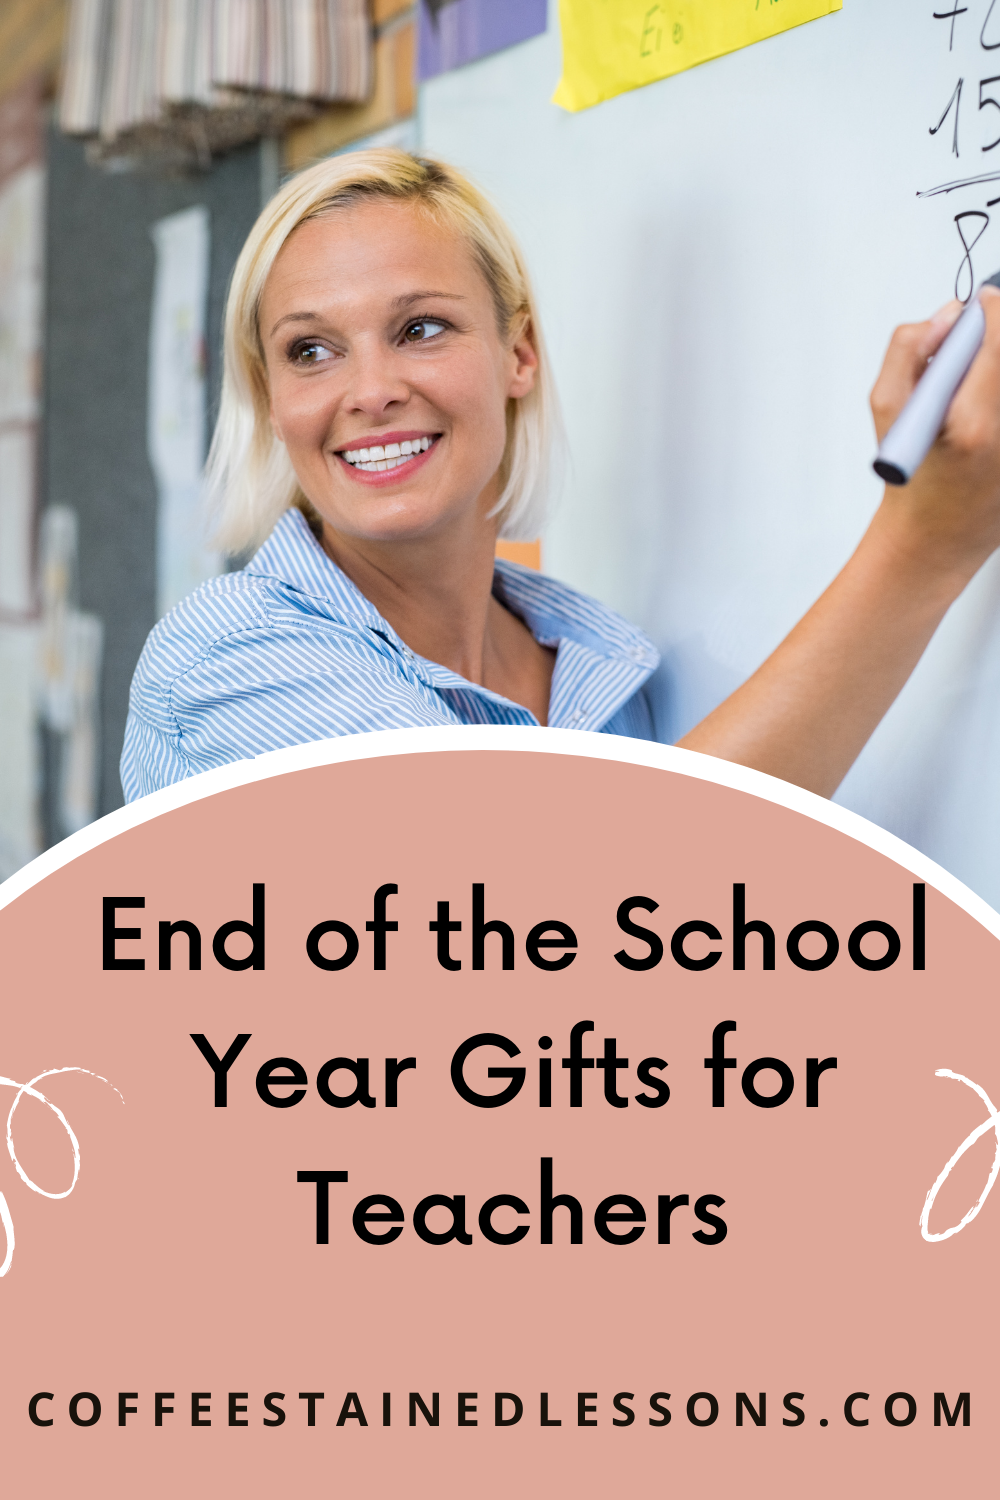 end-of-the-school-year-gifts-for-teachers